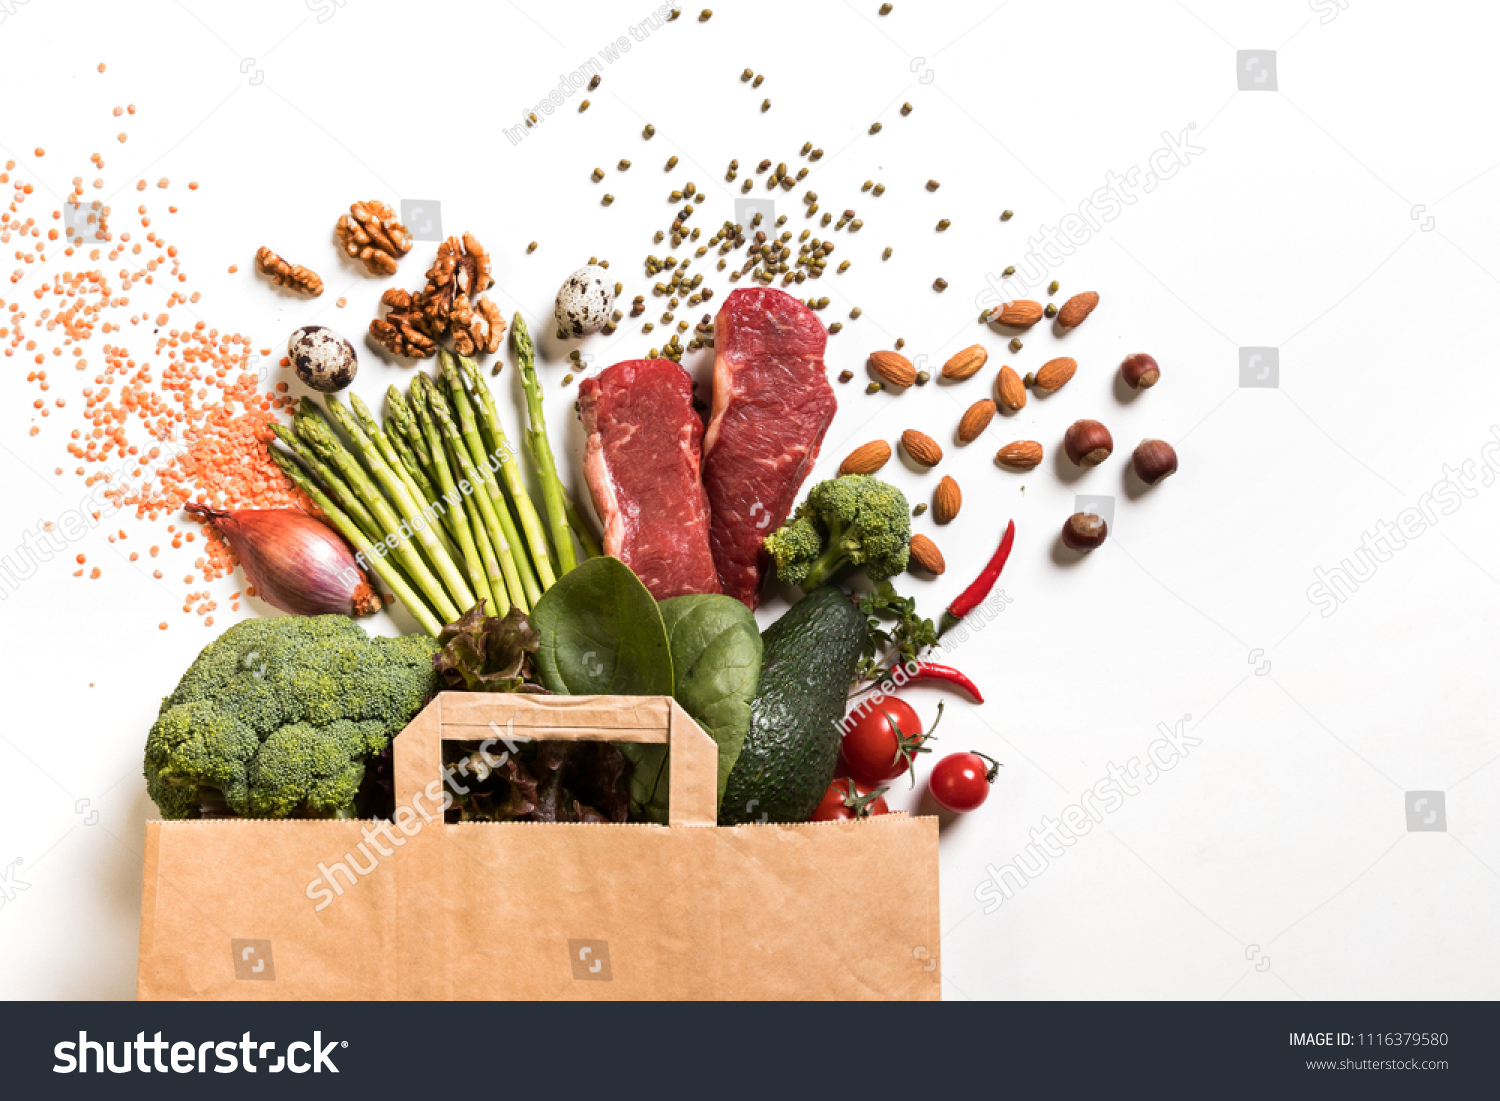 Paper Bag Full Of Green Vegetables And Fresh Beef Broccoli Onions Avocados